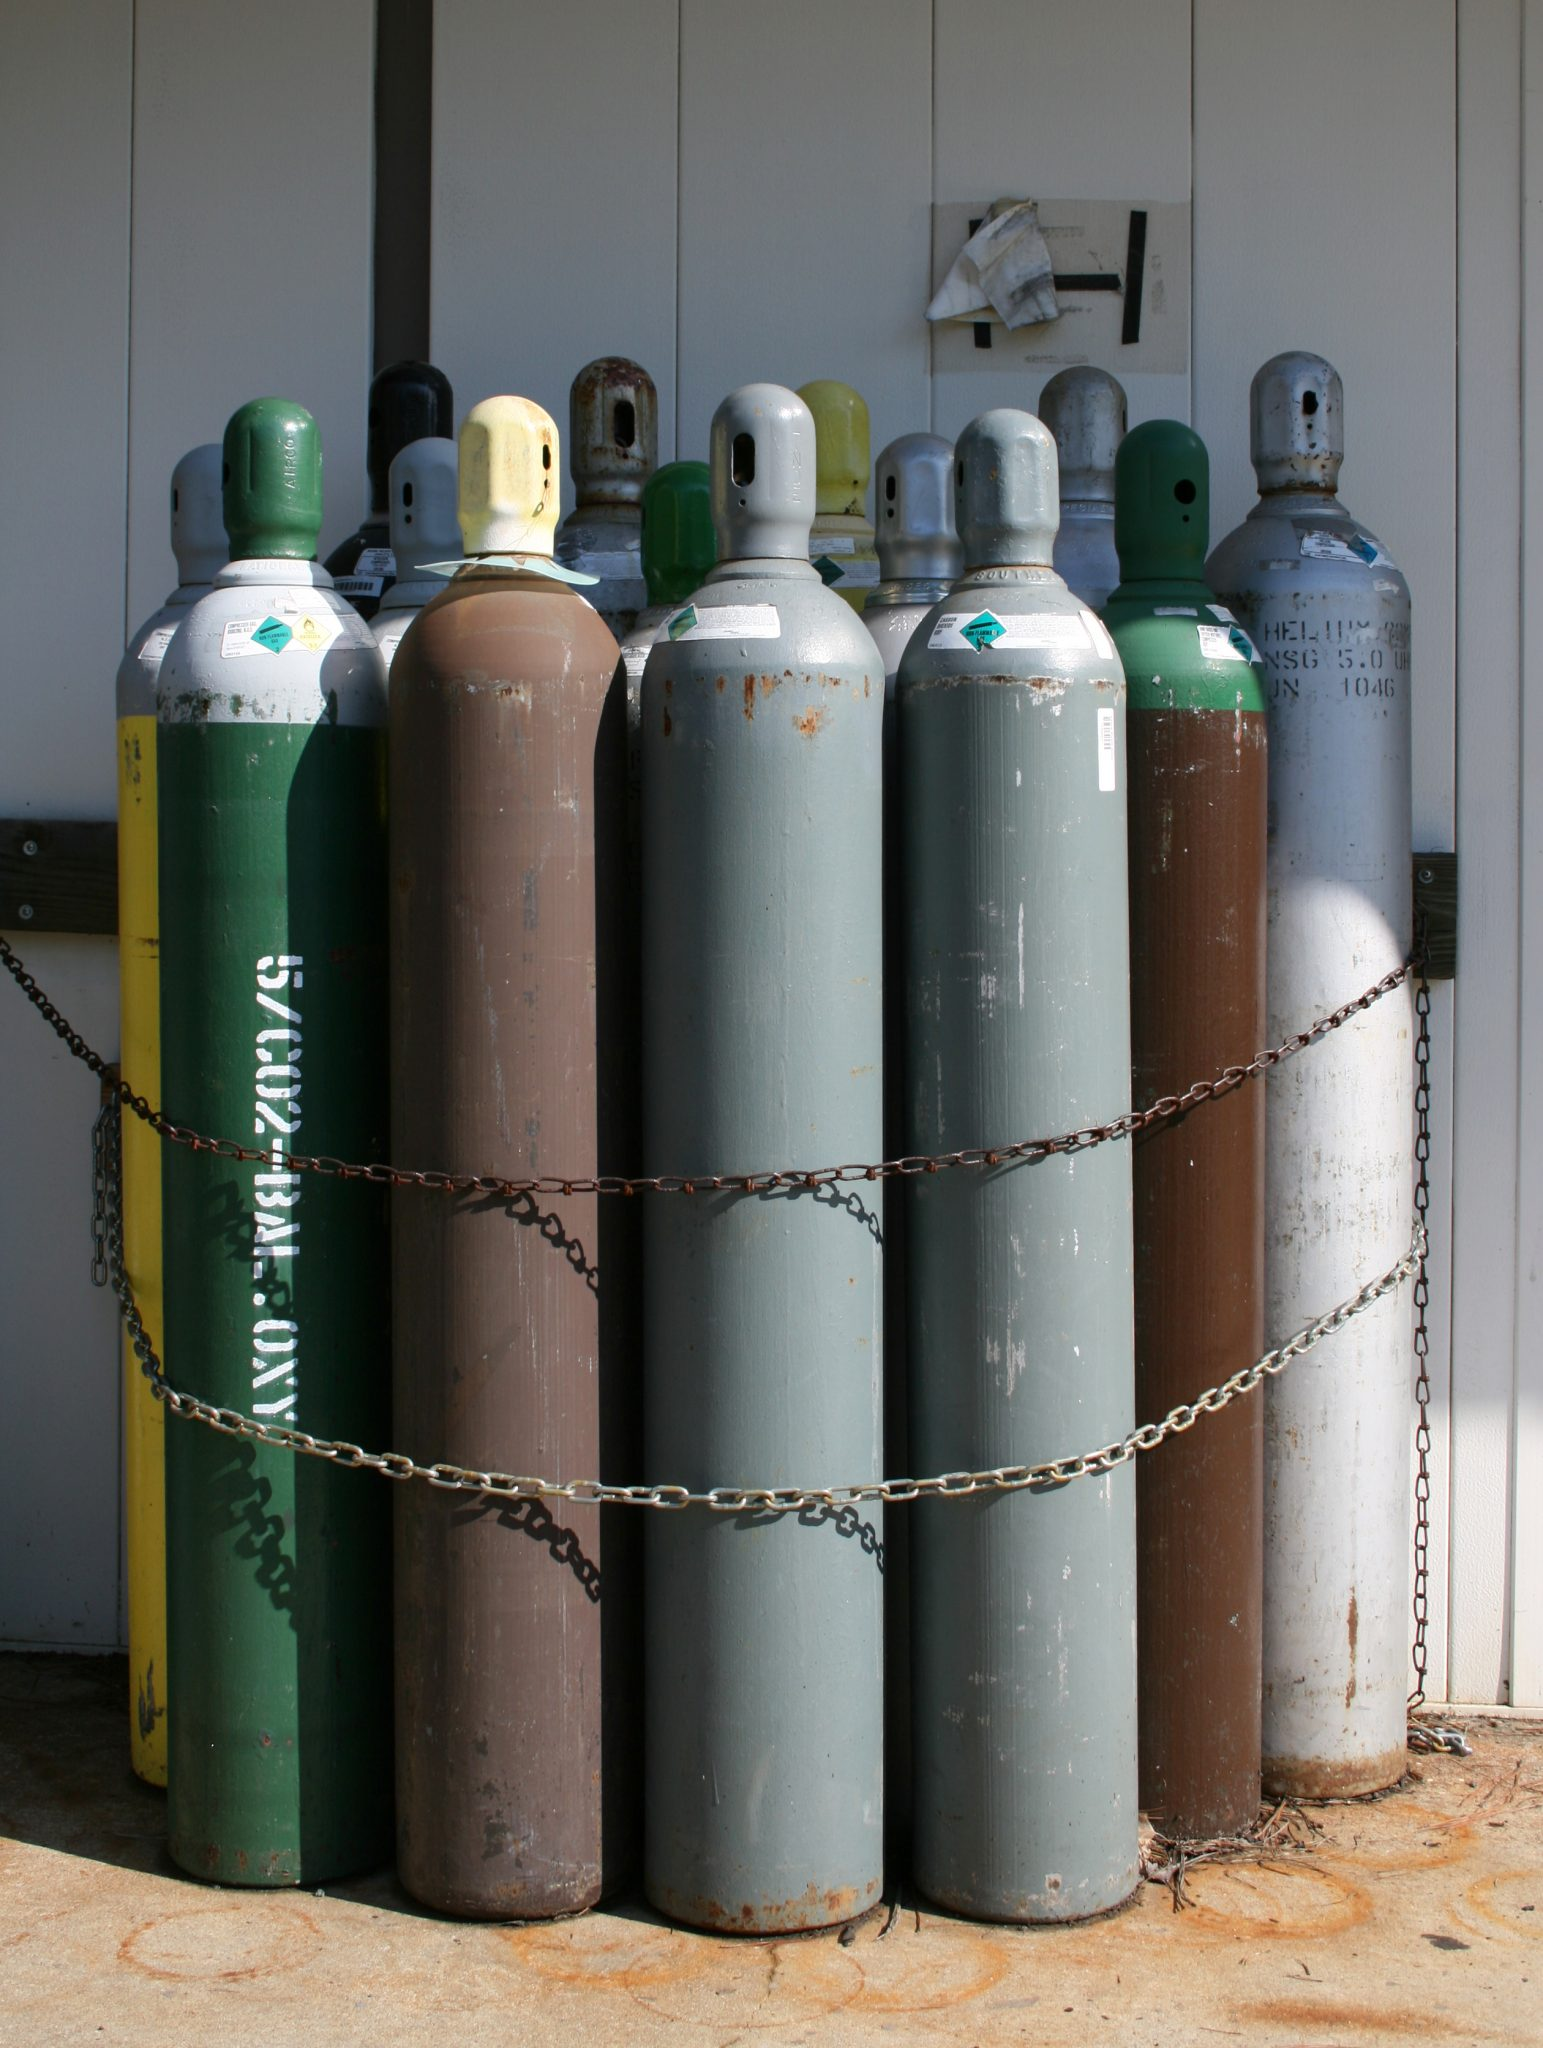 Compressed gas cylinders double chained to an exterior wall